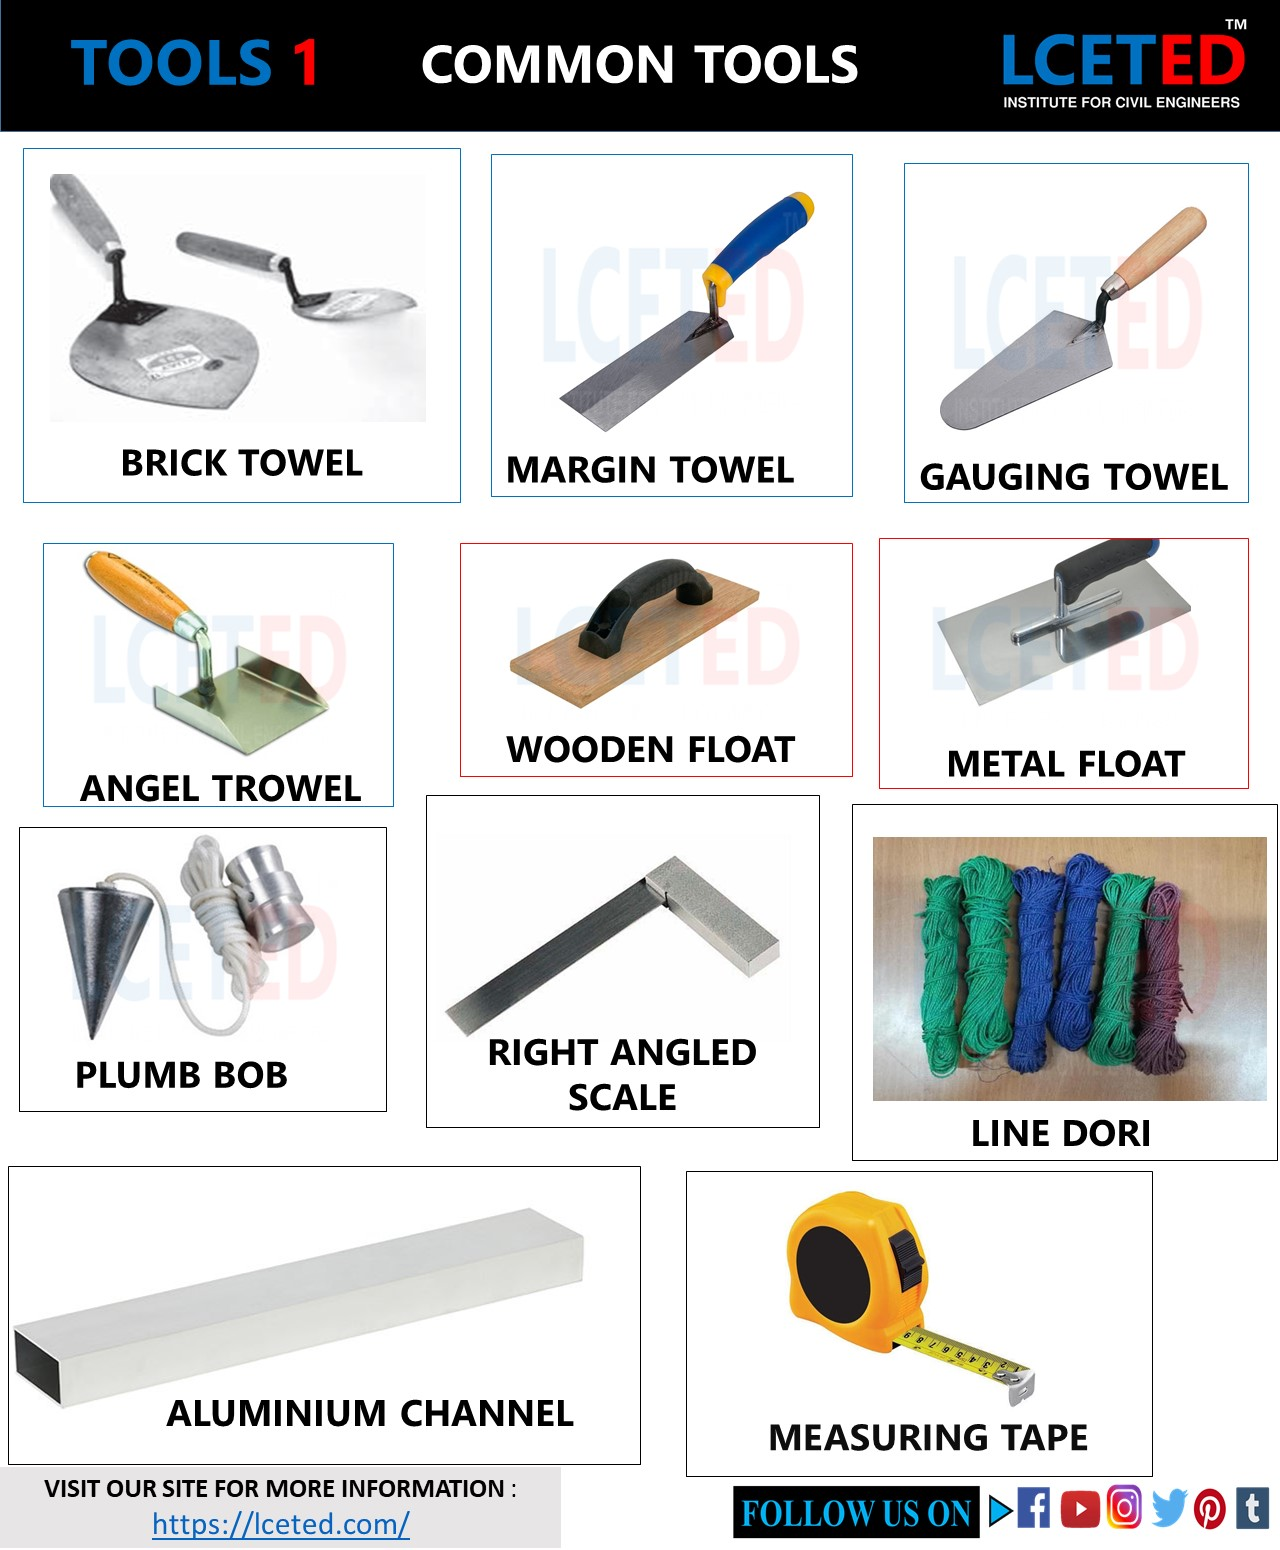 ALL YOU WANT TO KNOW ABOUT MASON TOOLS